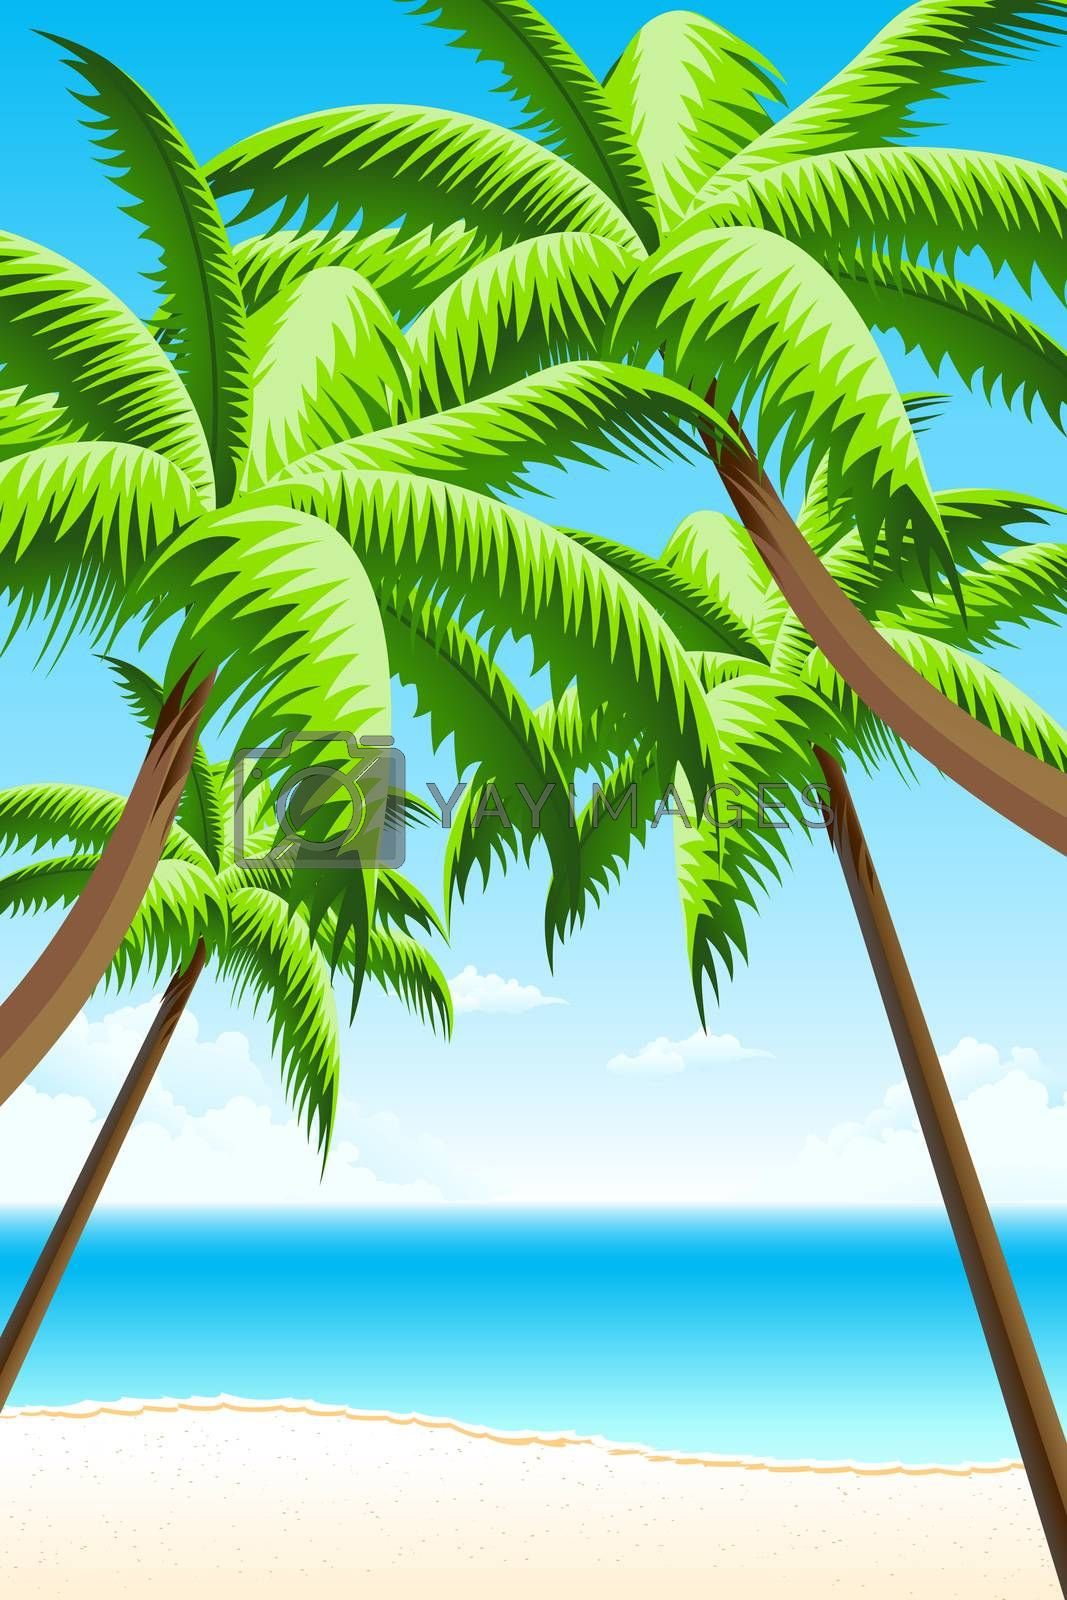 Summer Vacation Background by WaD